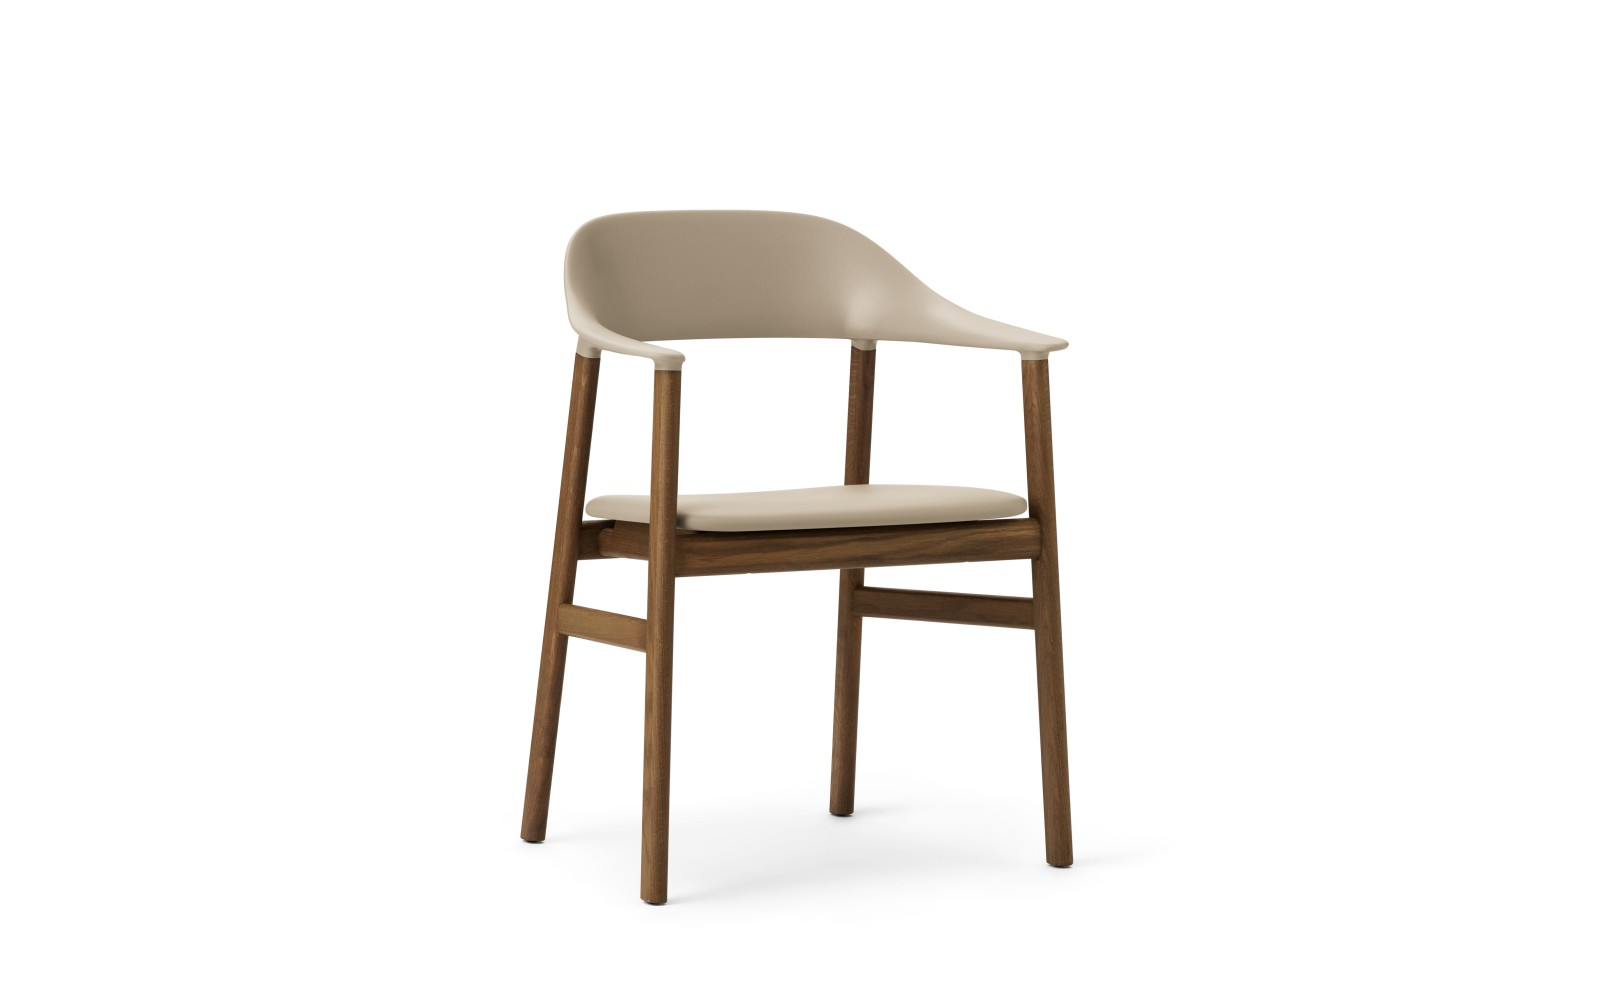 Herit Dining Chair with Armrests and Upholstered Seat Spectrum Leather Sand, Smoked Oak